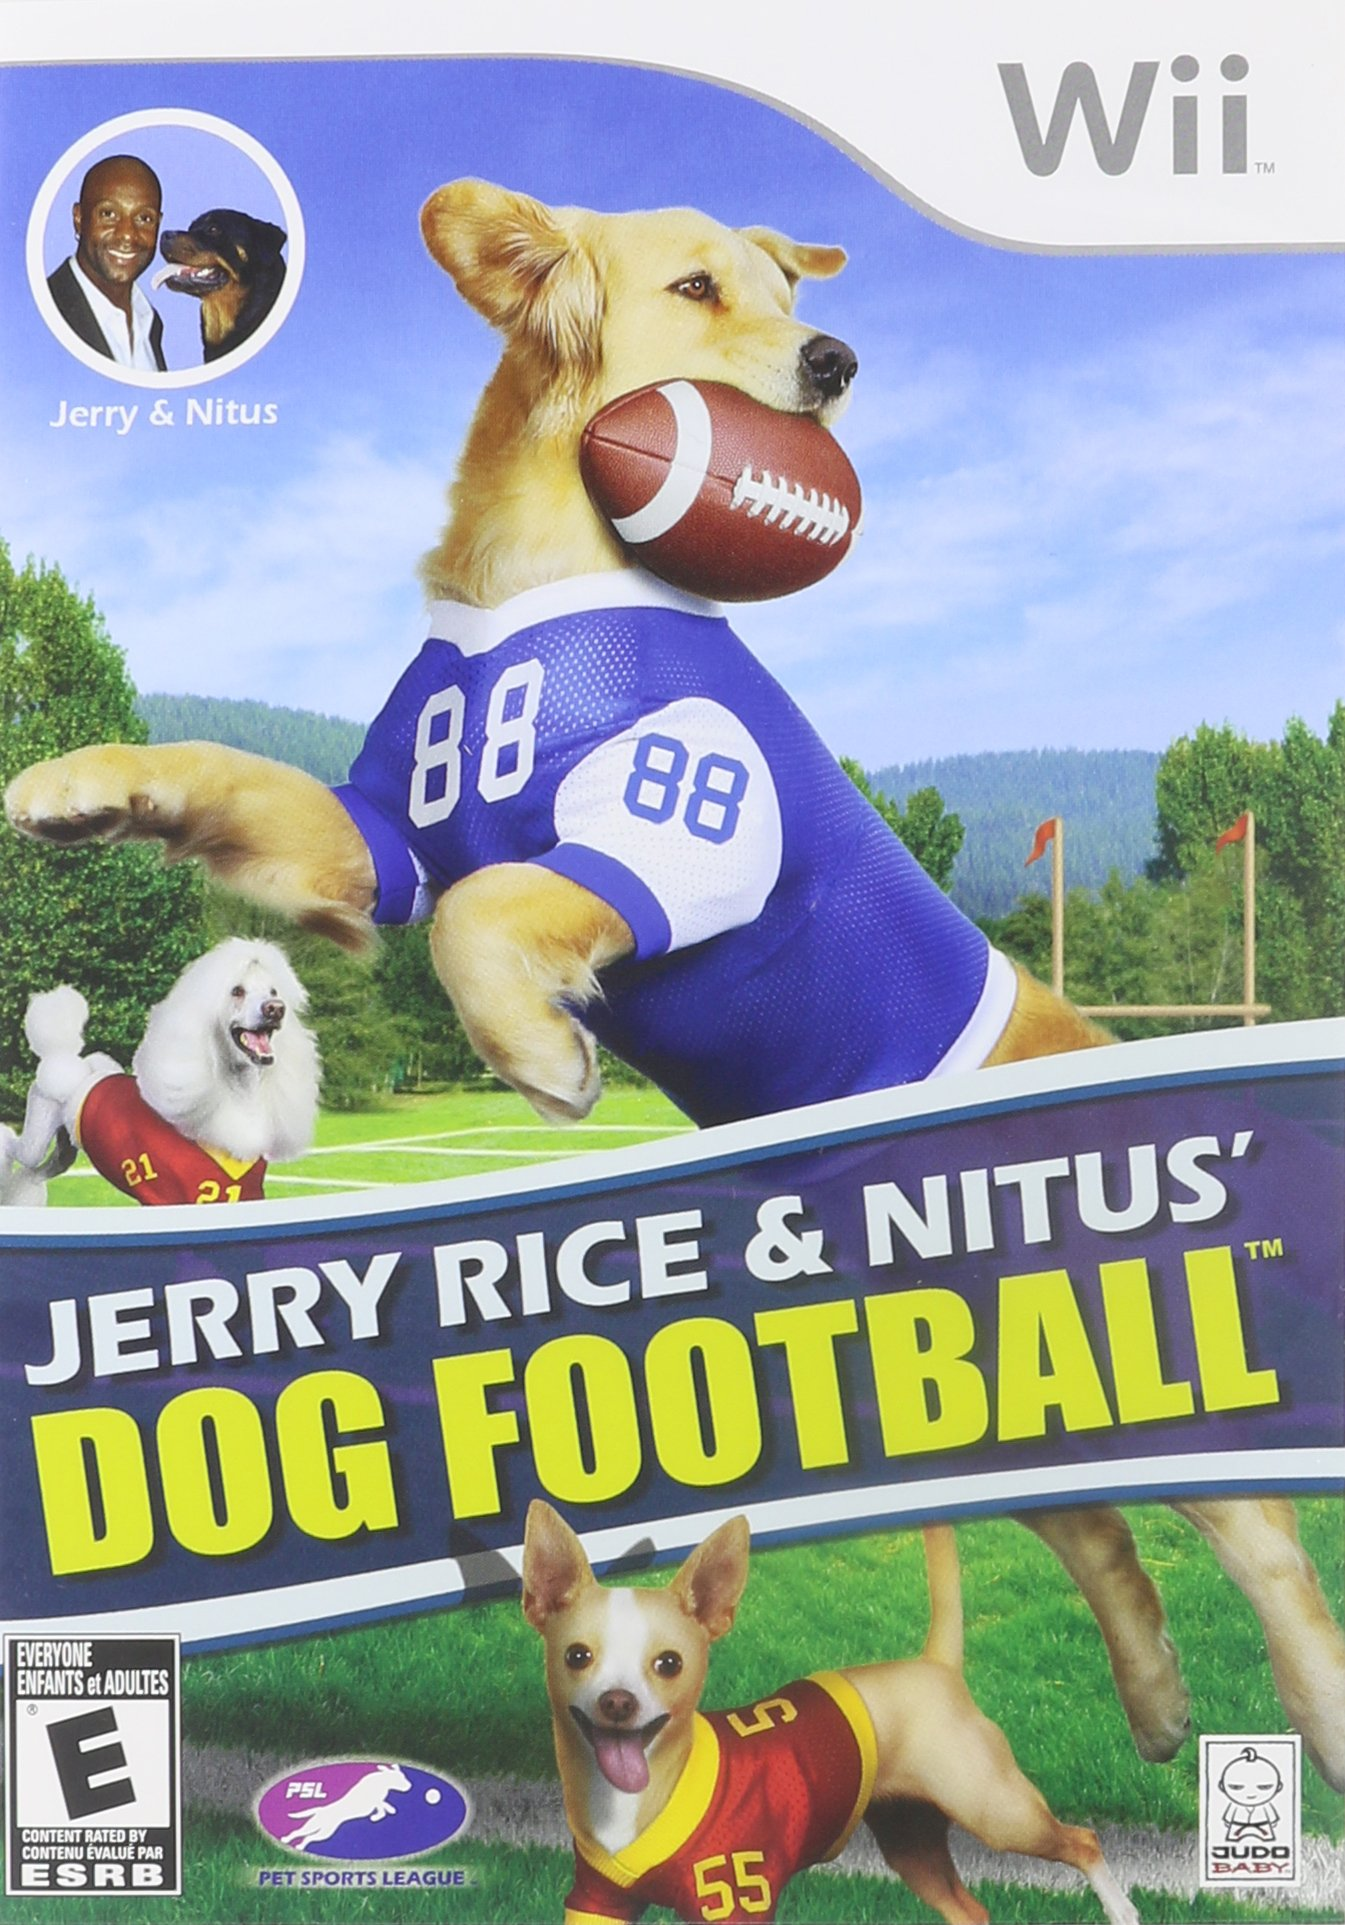 Jerry Rice & Nitus' Dog Football by Judobaby (Image #1)